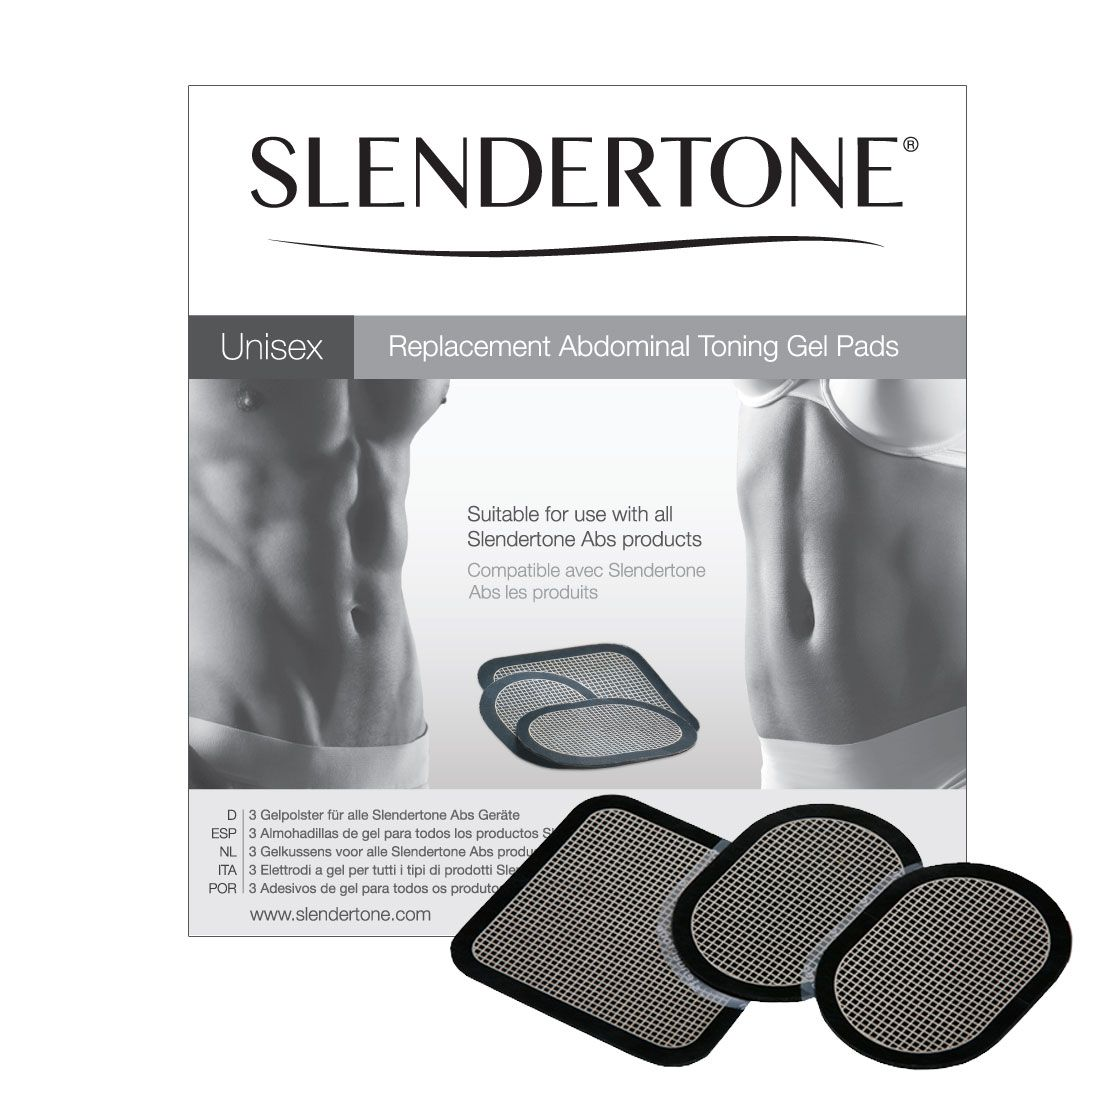 Slendertone Electrodes Abs8, Abs7, Abs6, Abs5, Connect Abs, et Abs3.